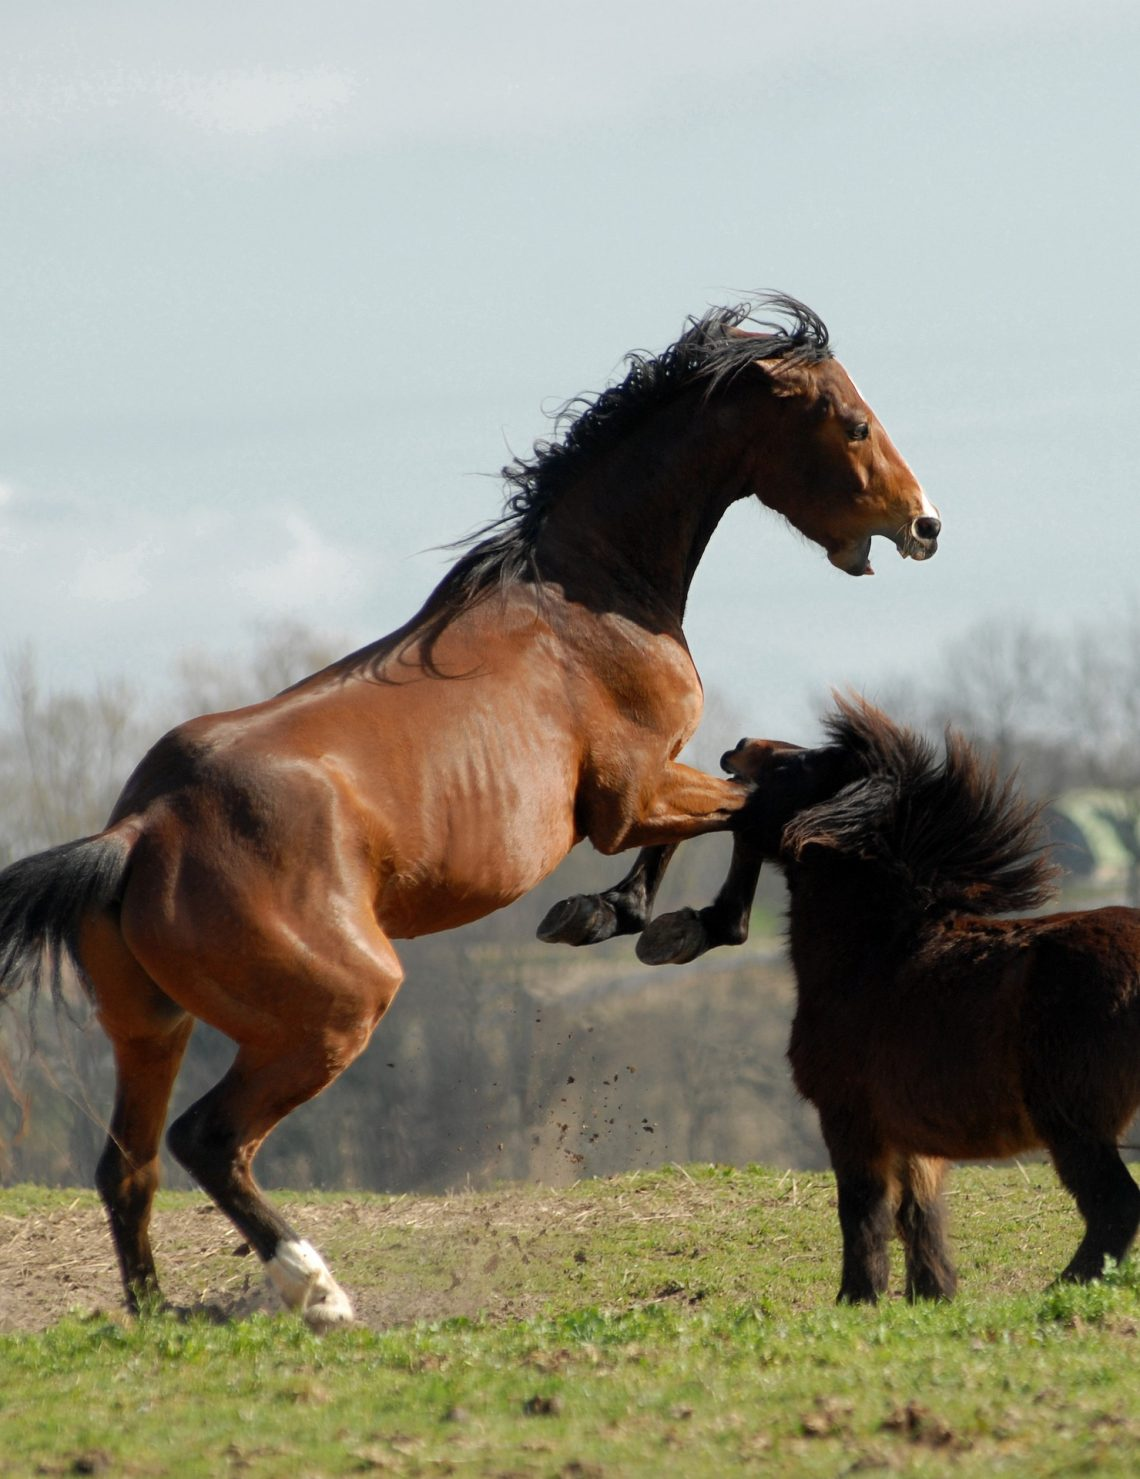 cheval agressif